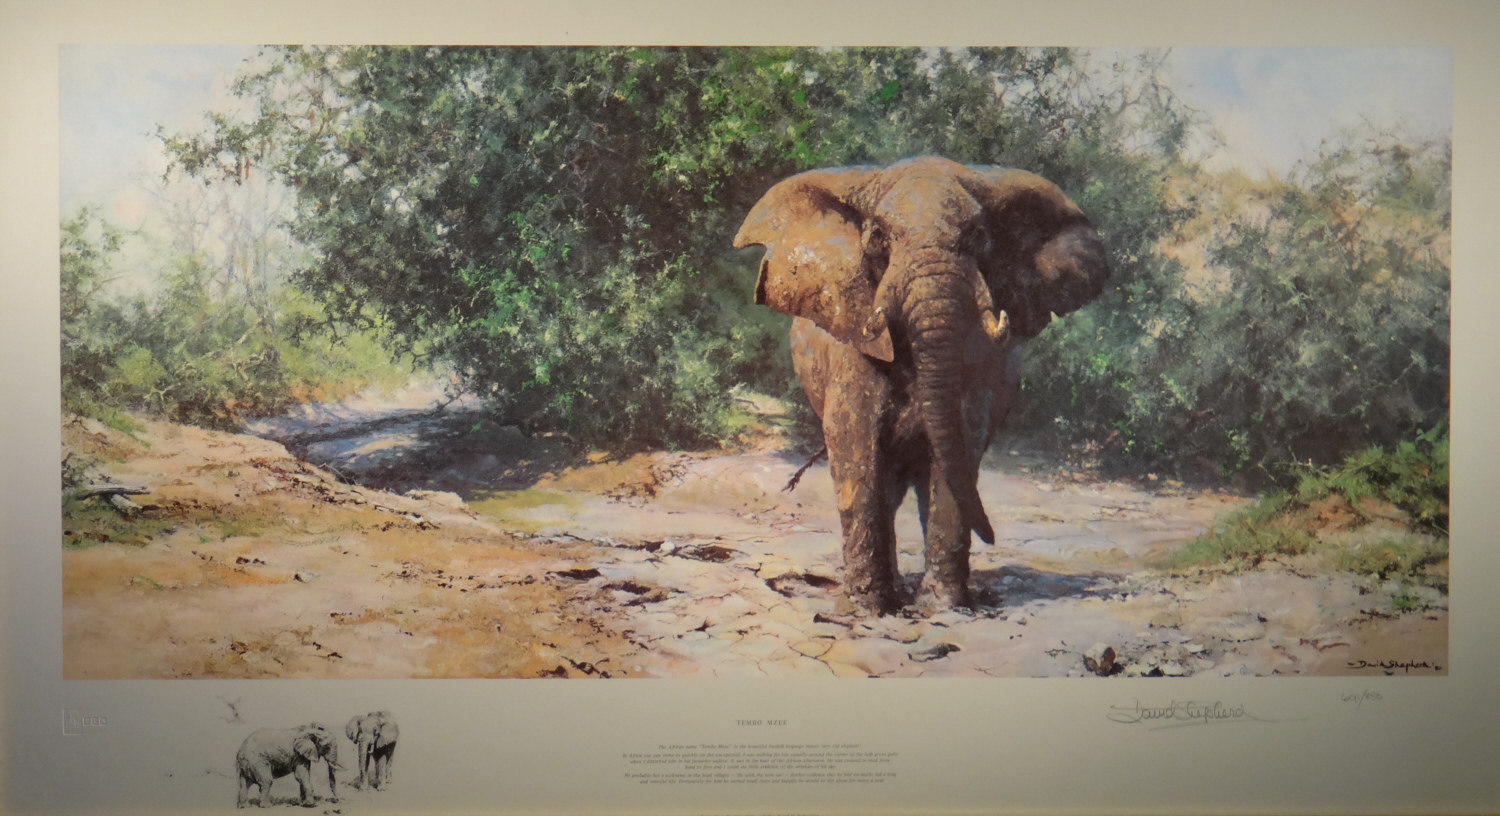 david shepherd signed limited edition print Tembo Mzee elephant